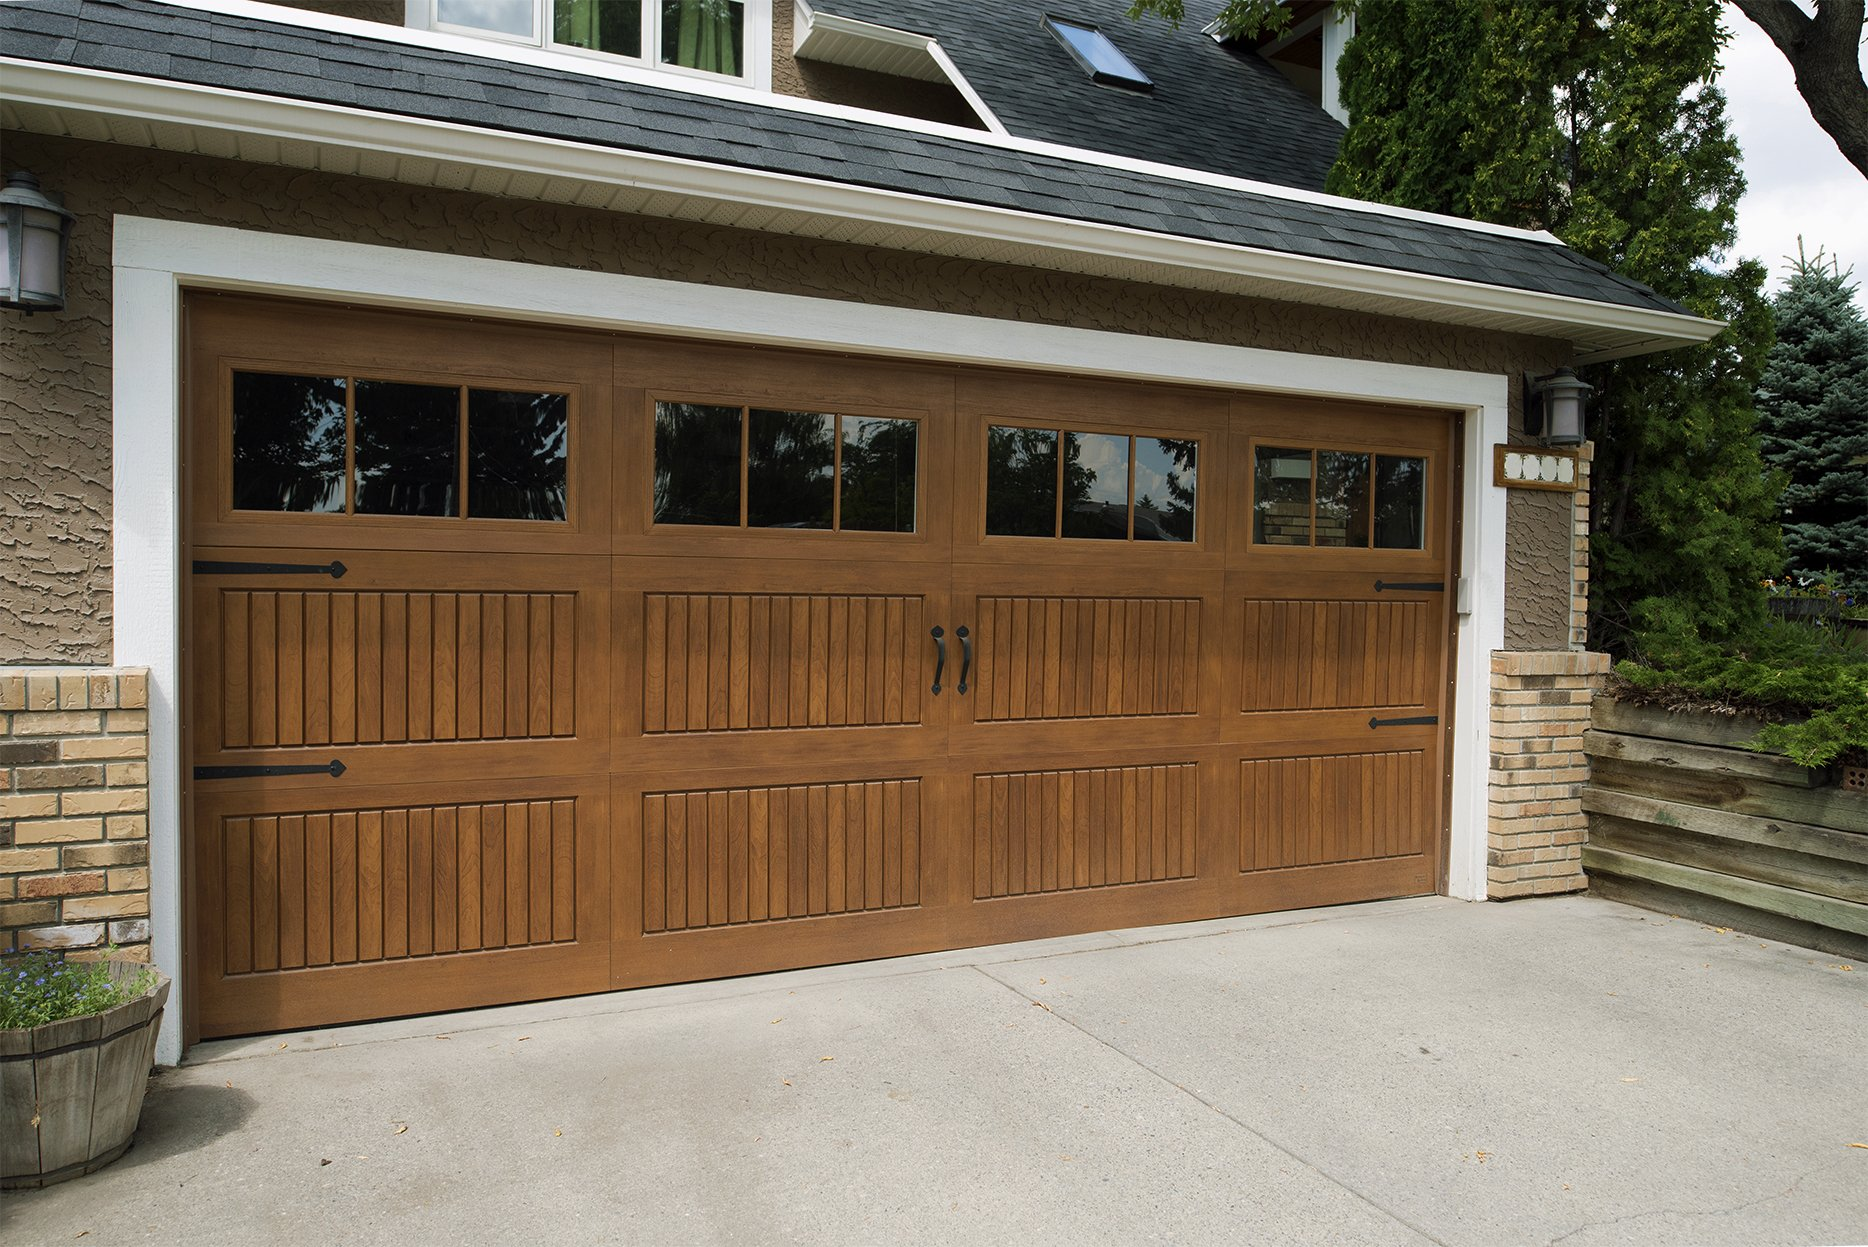 Garage doors hamshaw lumber ace hardware - Wayne dalton garage door panels ...